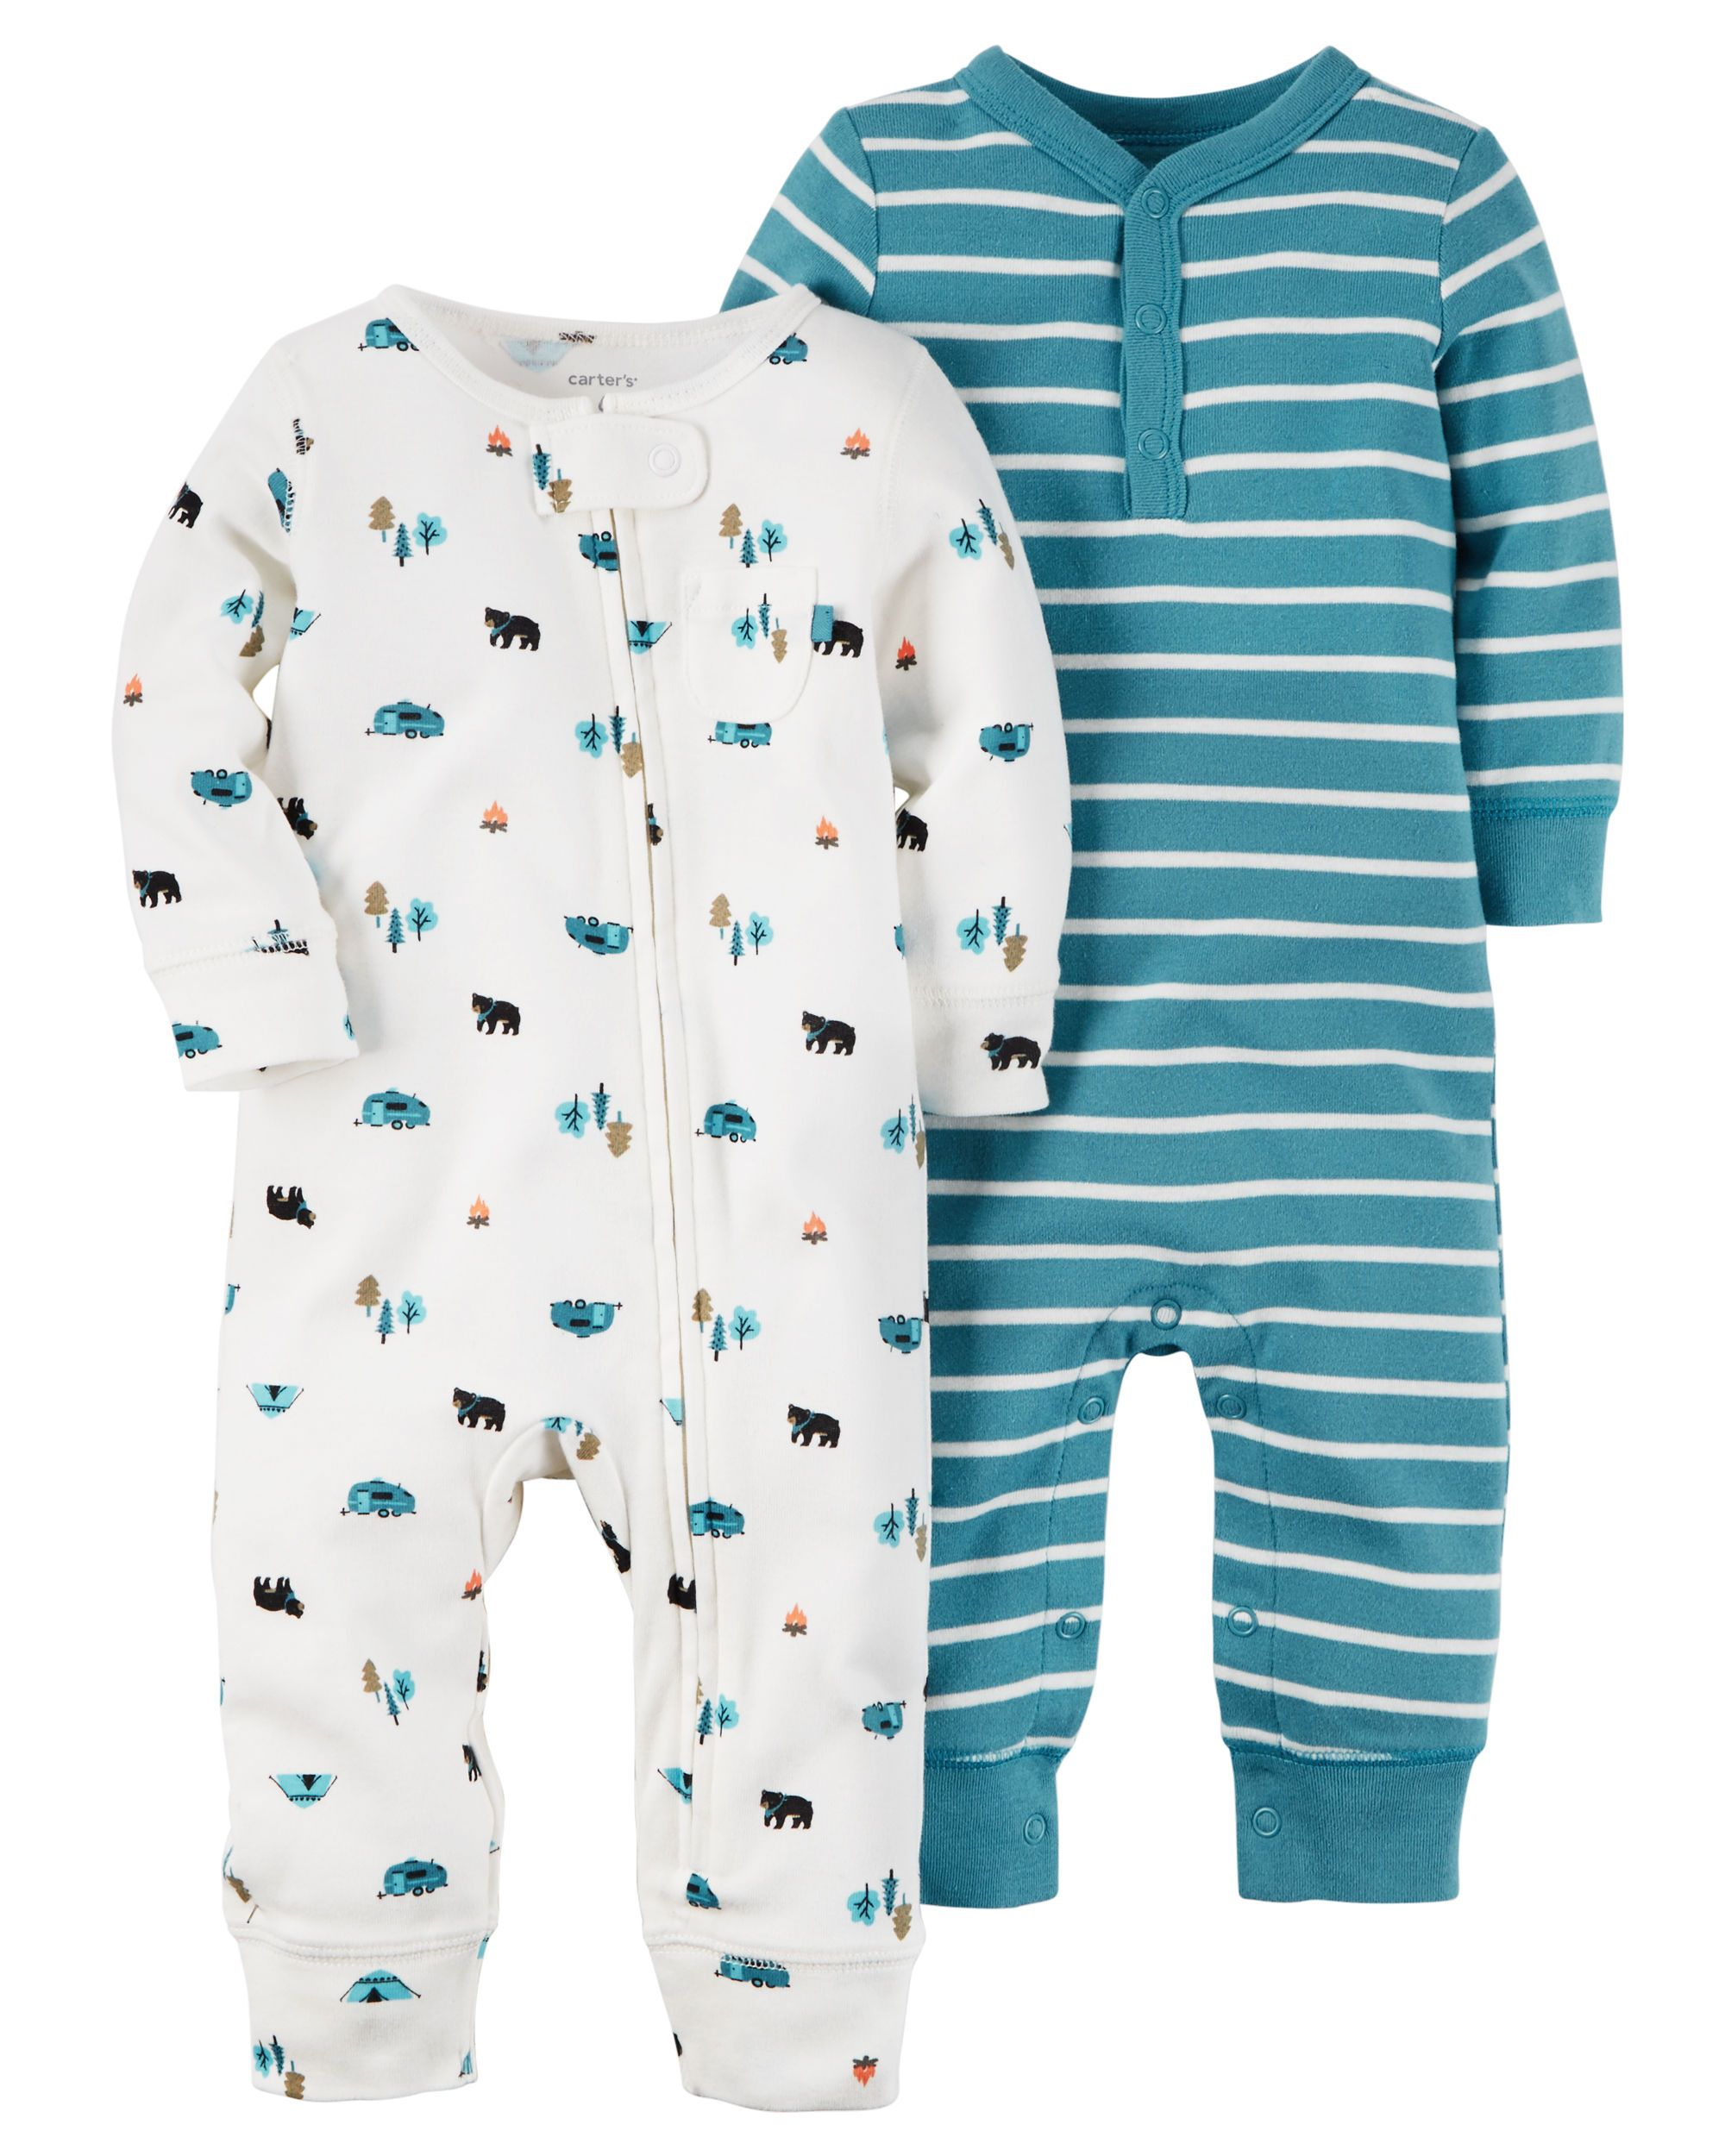 Carters Baby Boys 2-Pack Cotton jumpsuits Coveralls Set Blue